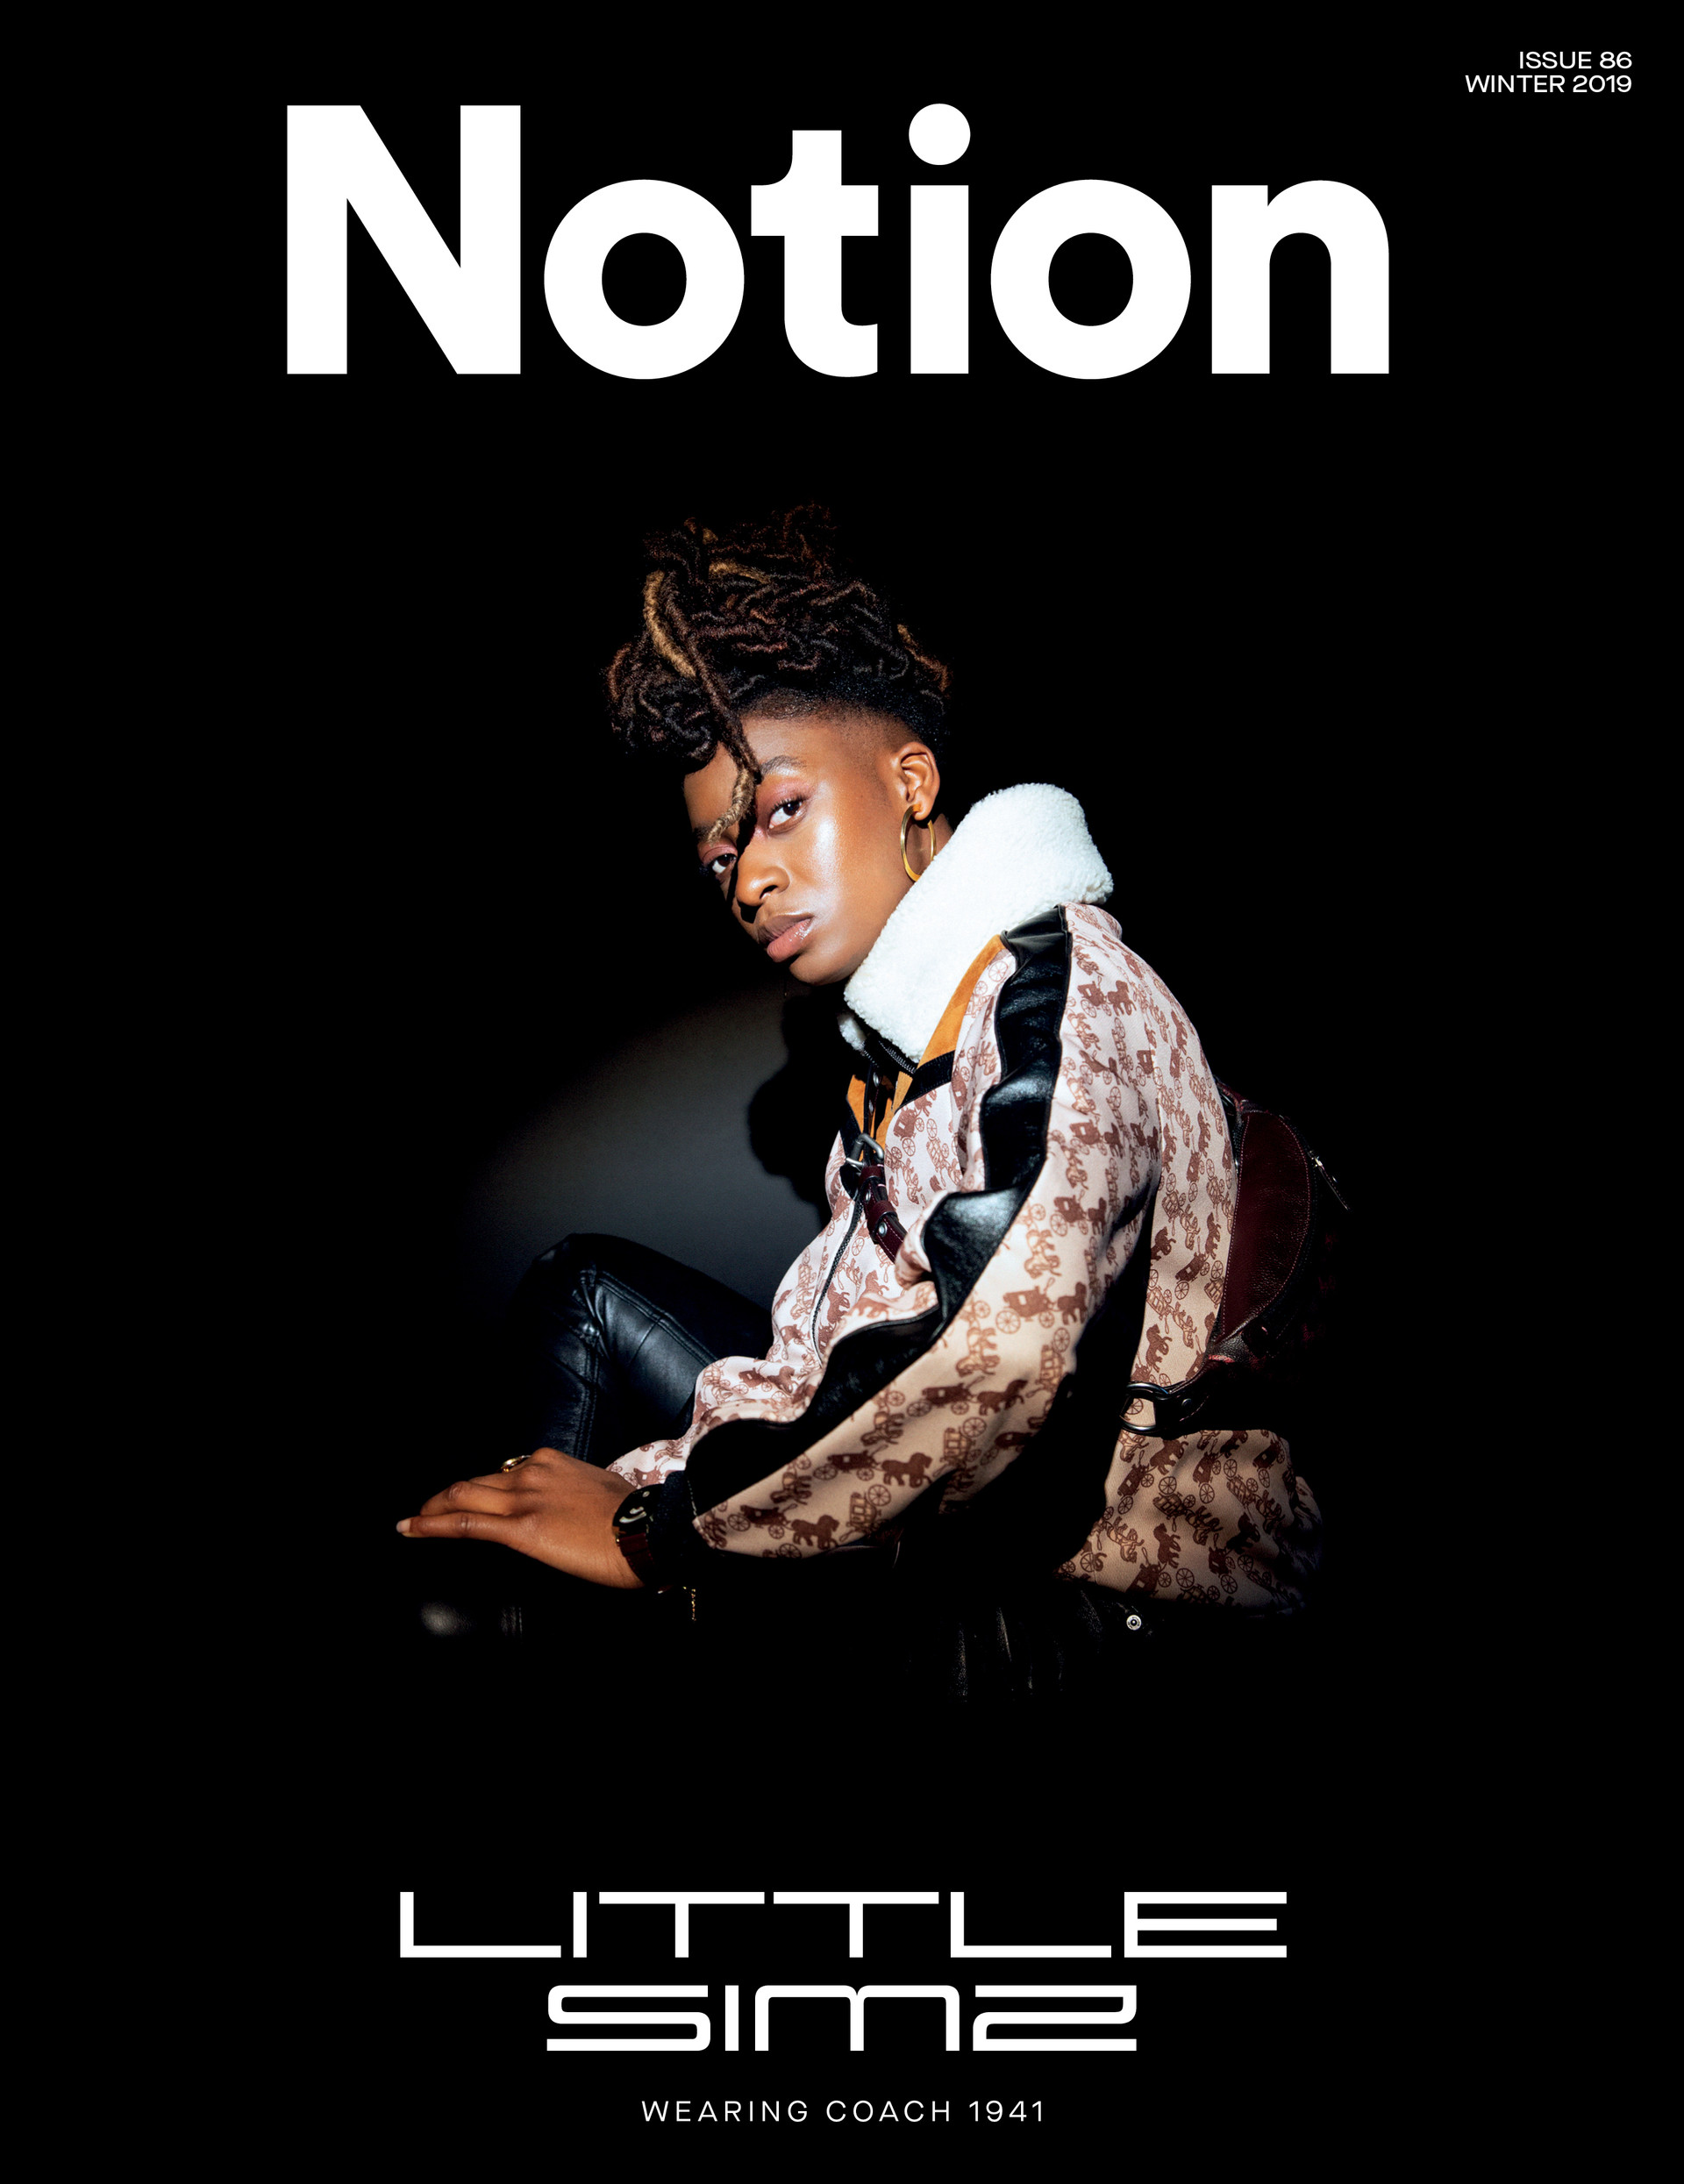 Little Simz x Notion